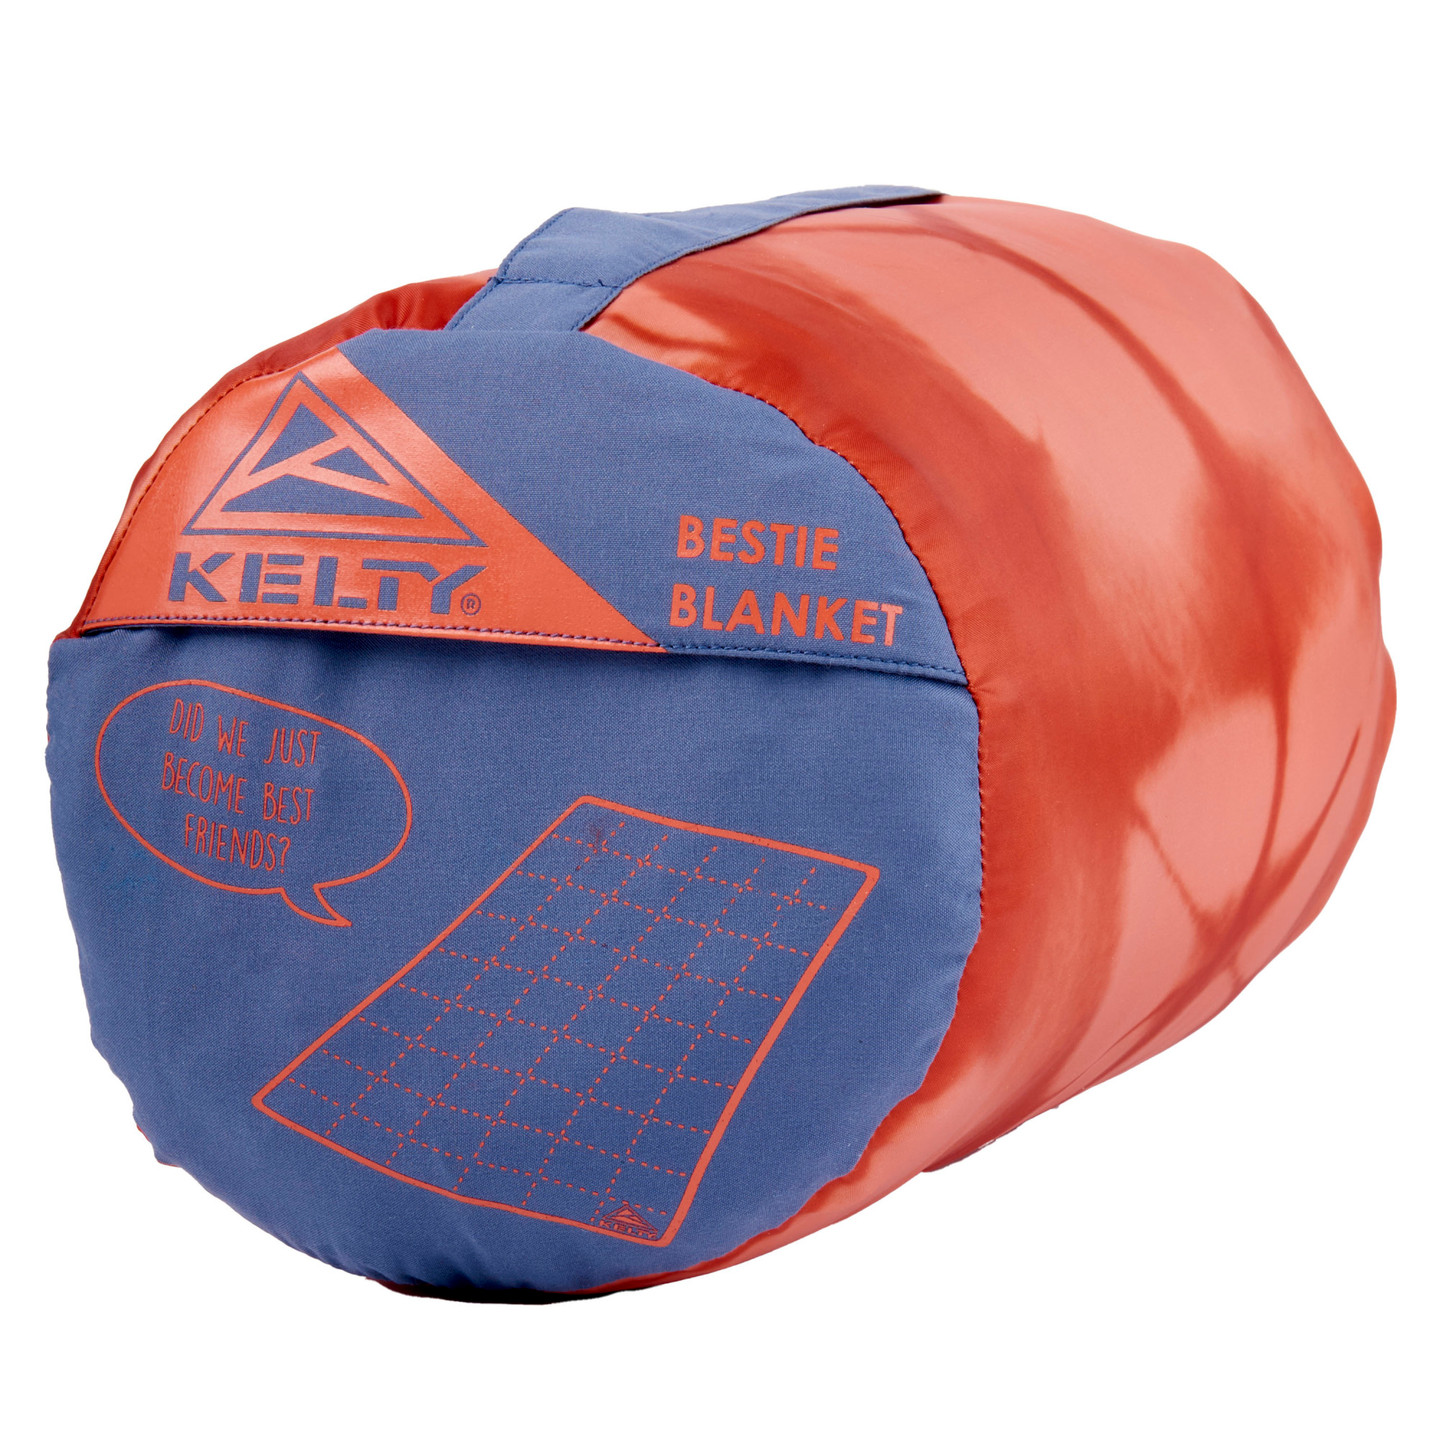 Picnics Kelty Bestie BFF Blanket Festivals Travel /& More Compact Blanket for Camping